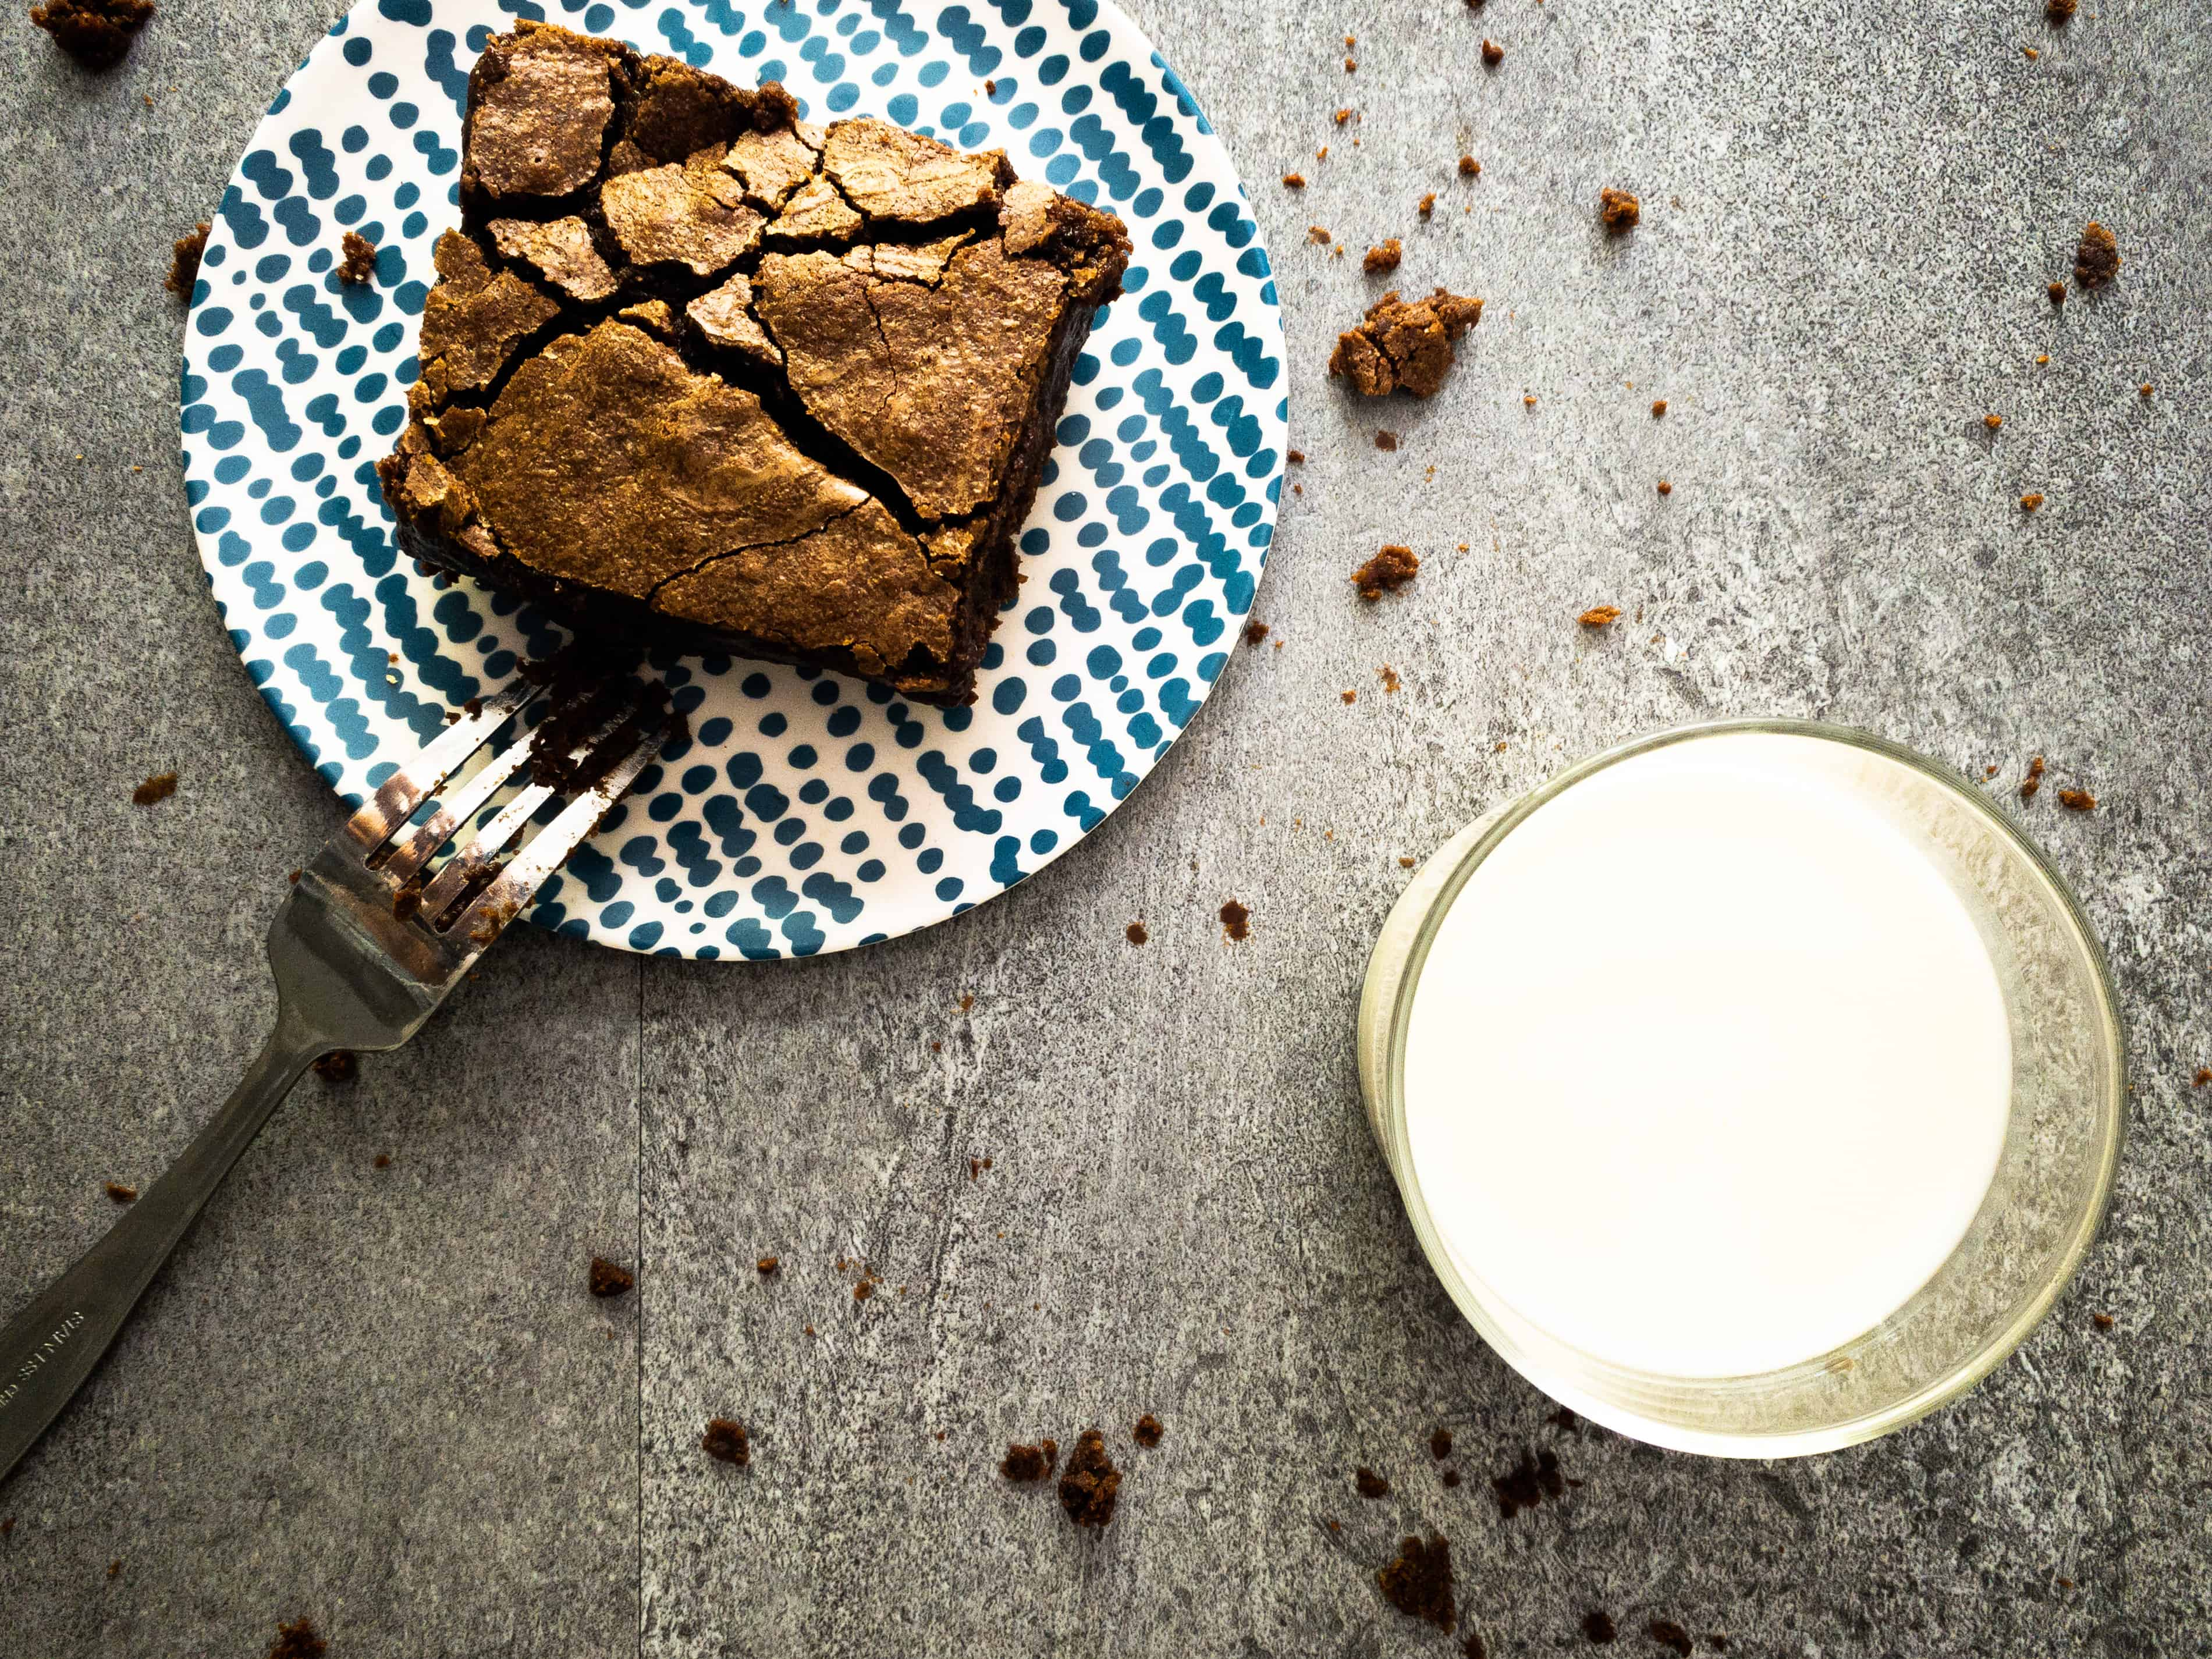 Overhead shot of brownie on a plate with a glass of milk. The fork is covered in fudgy particles sticking to it